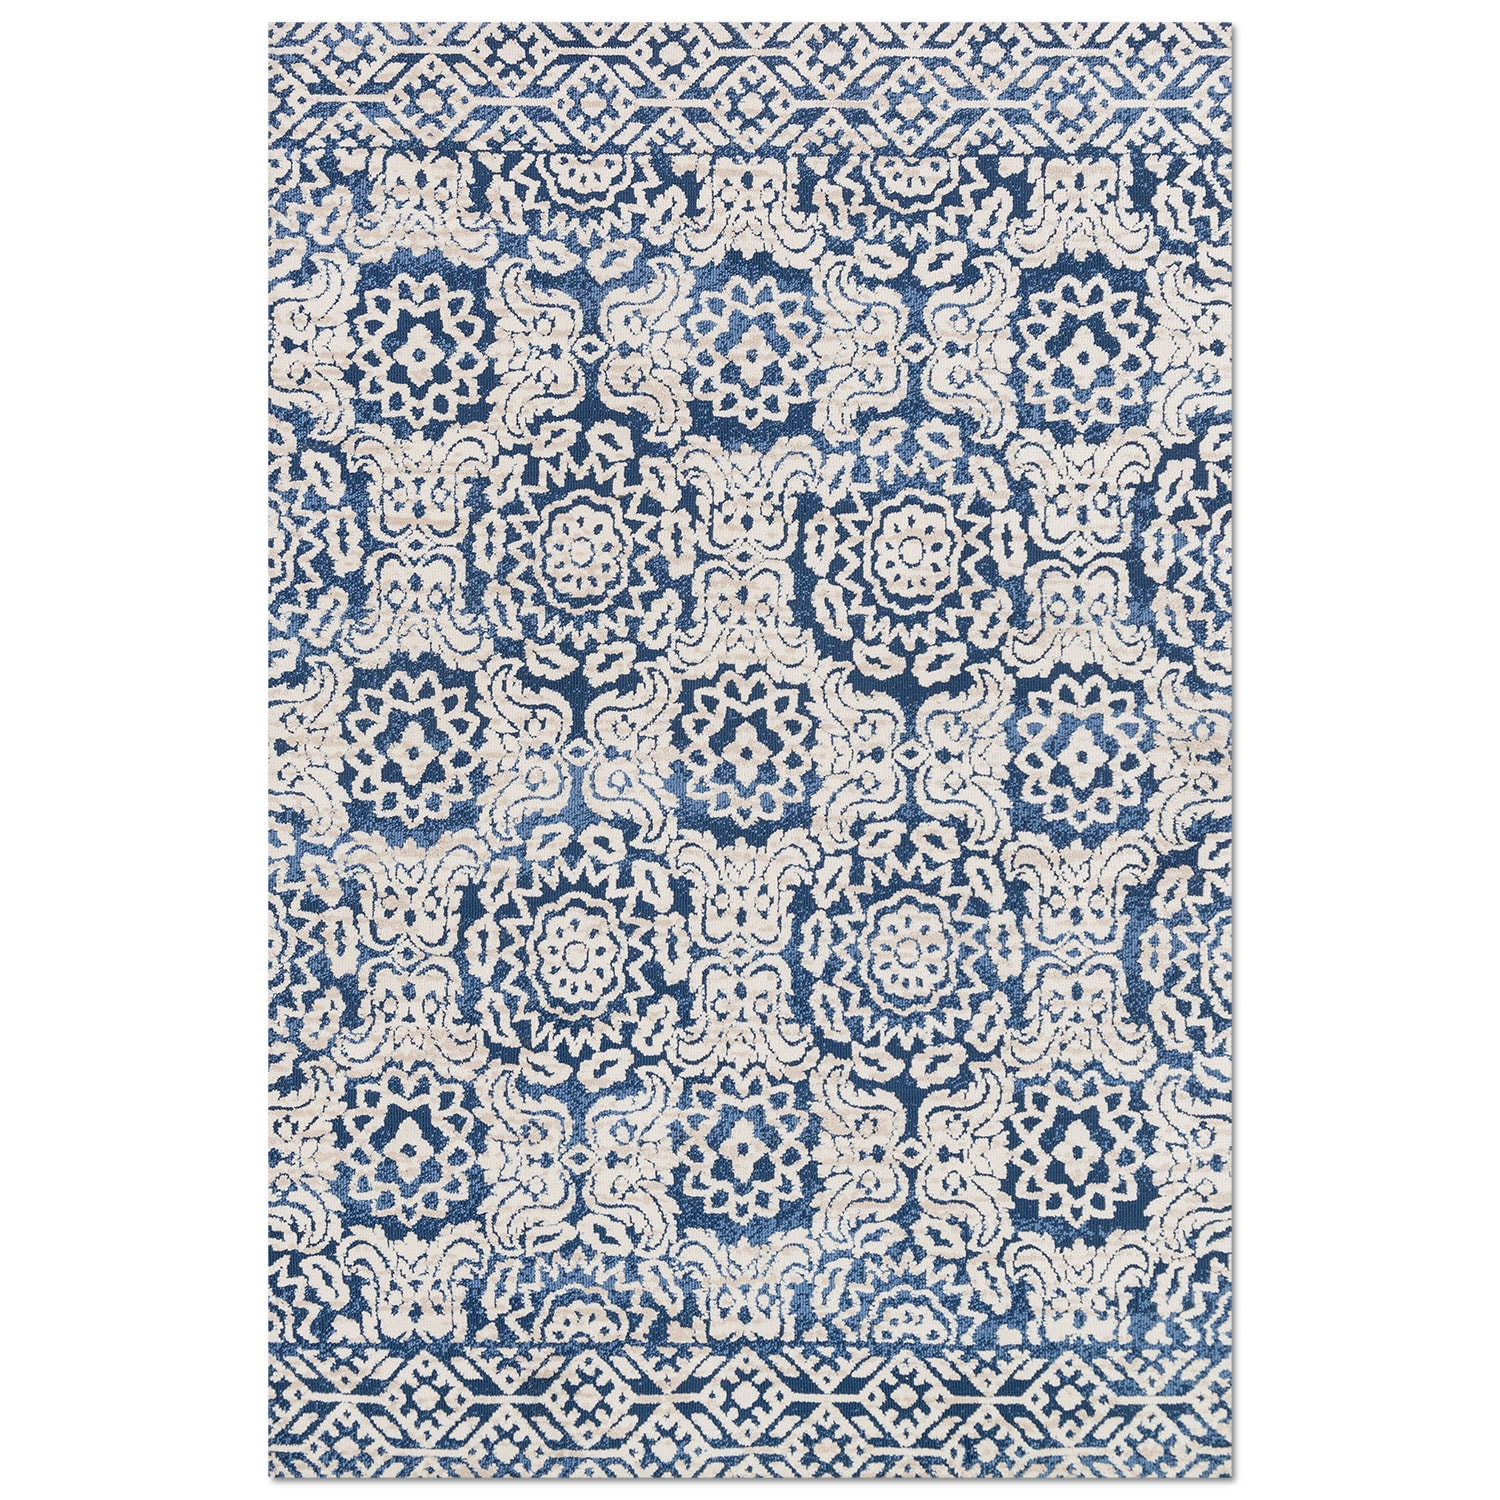 Rugs - Lotus 5' x 8' Rug - Blue and Antique Ivory